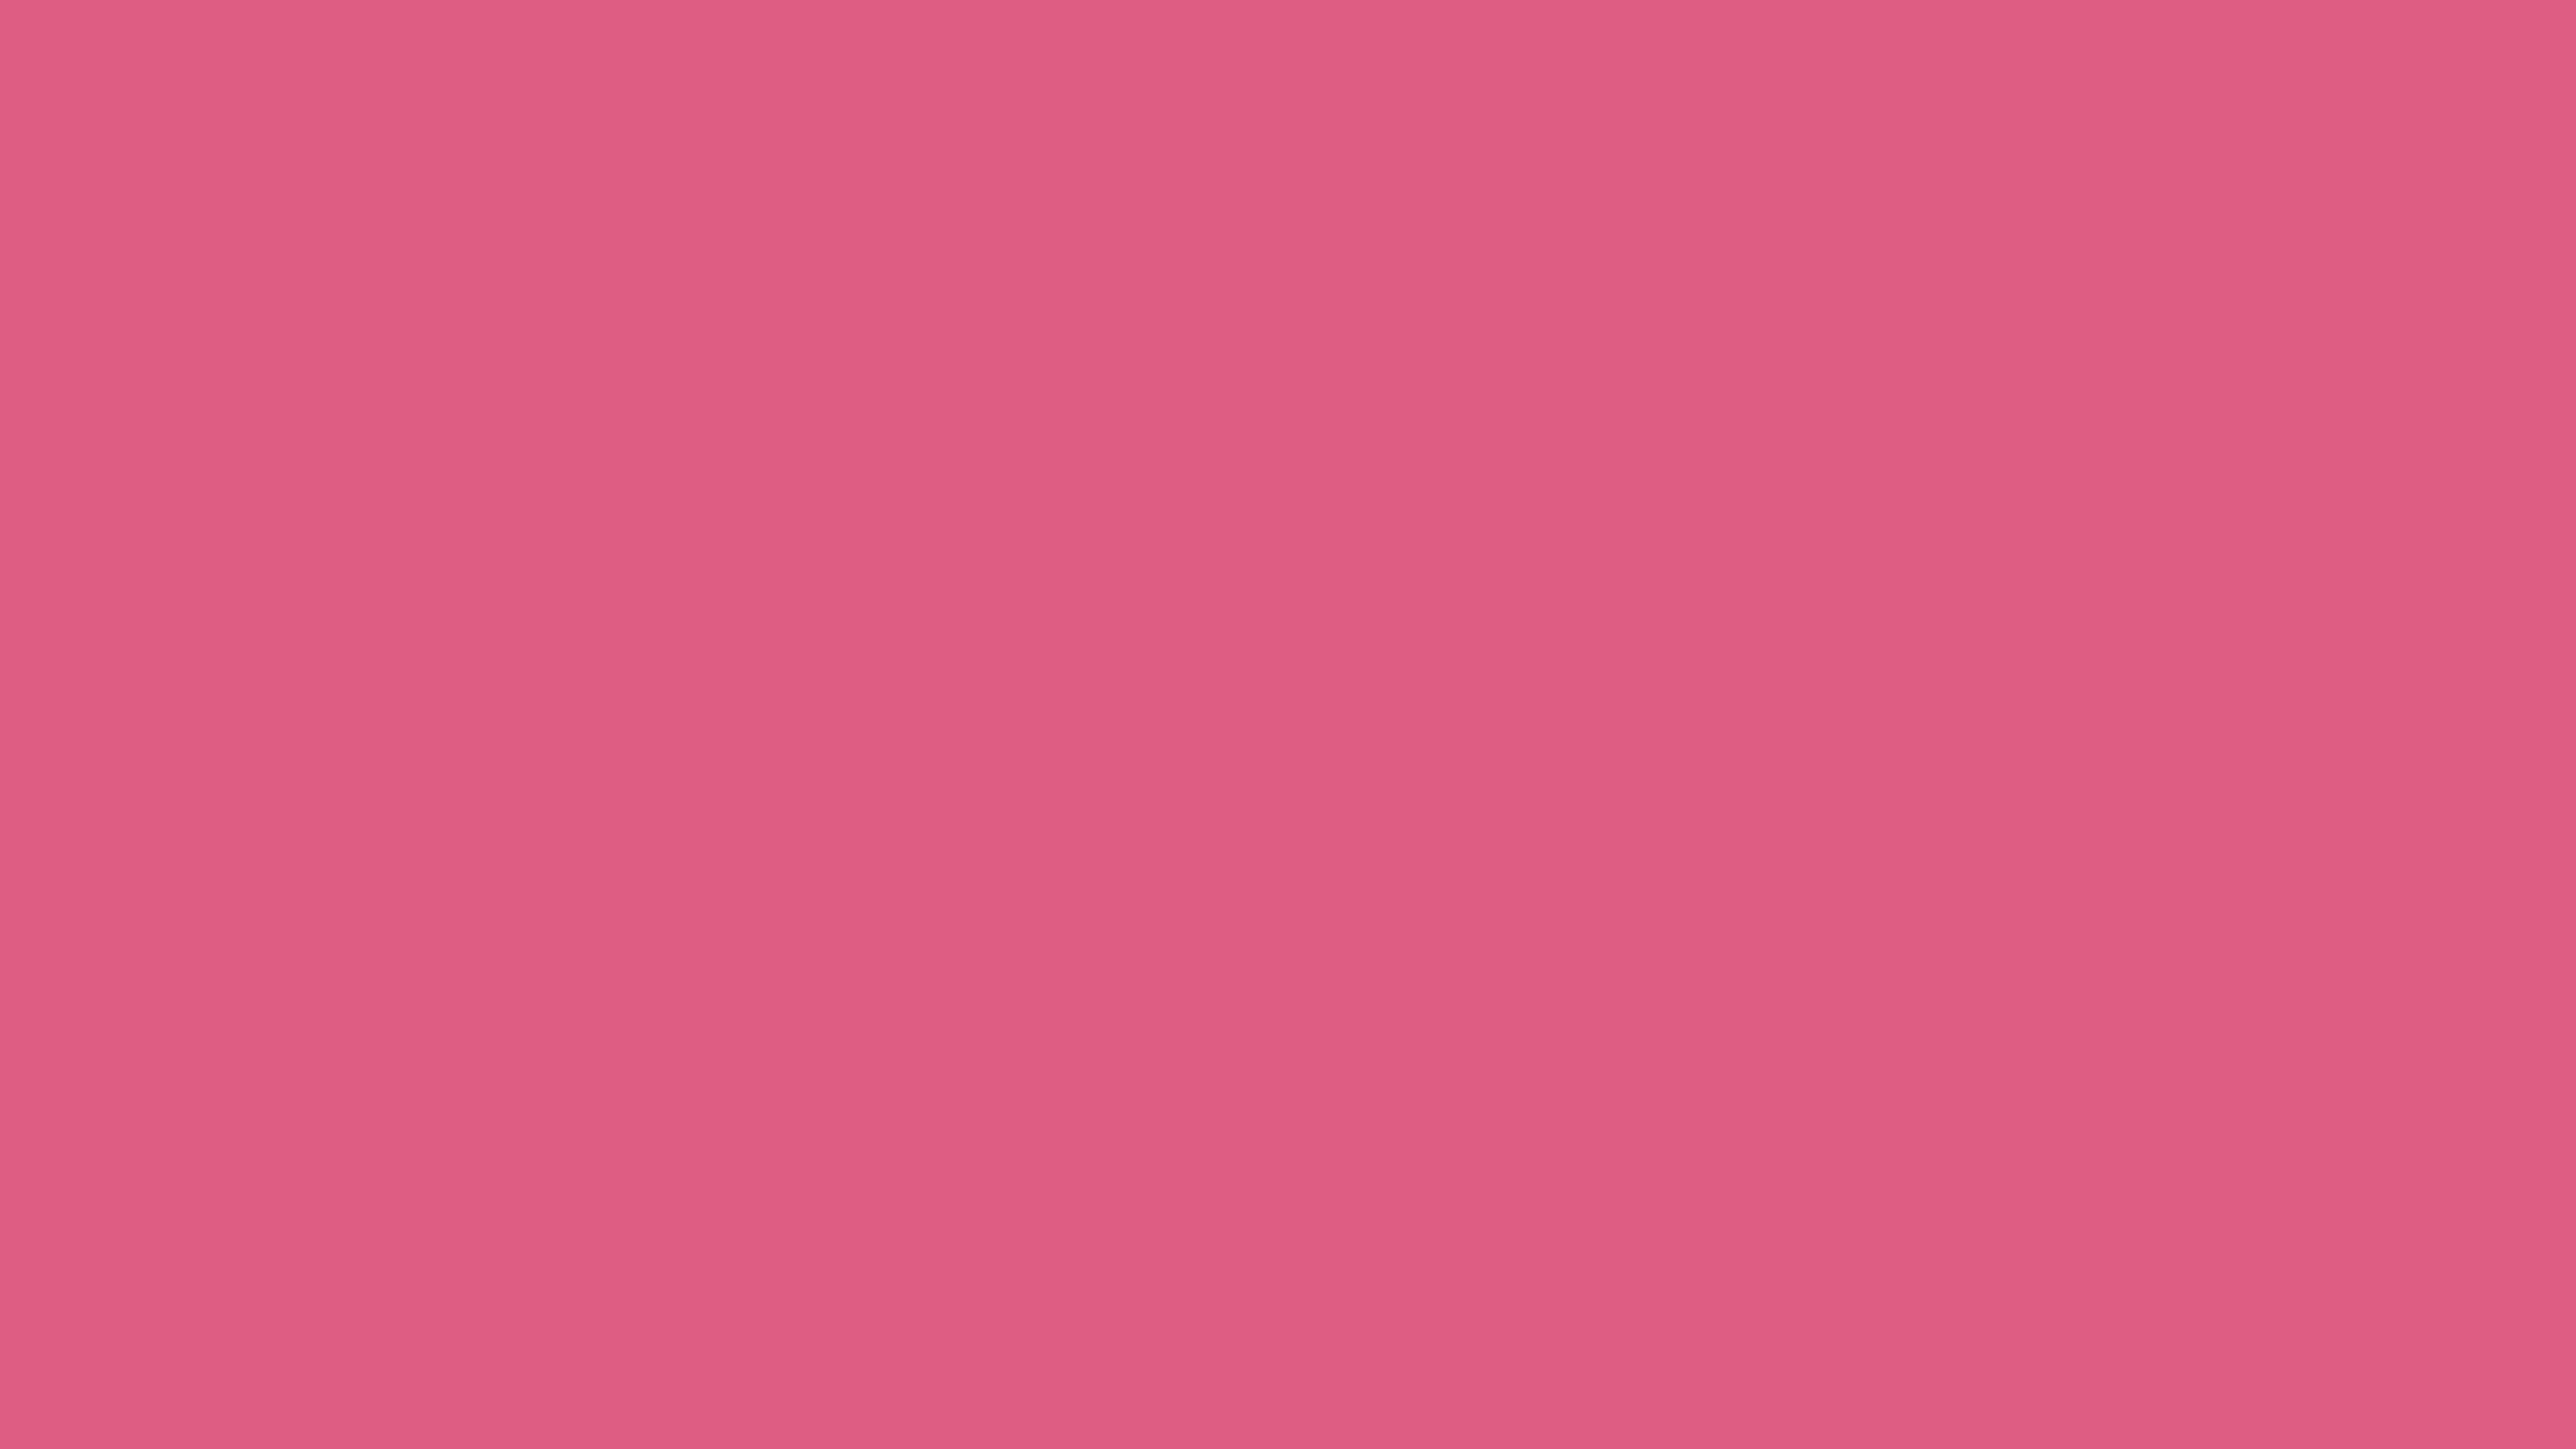 5120x2880 Blush Solid Color Background